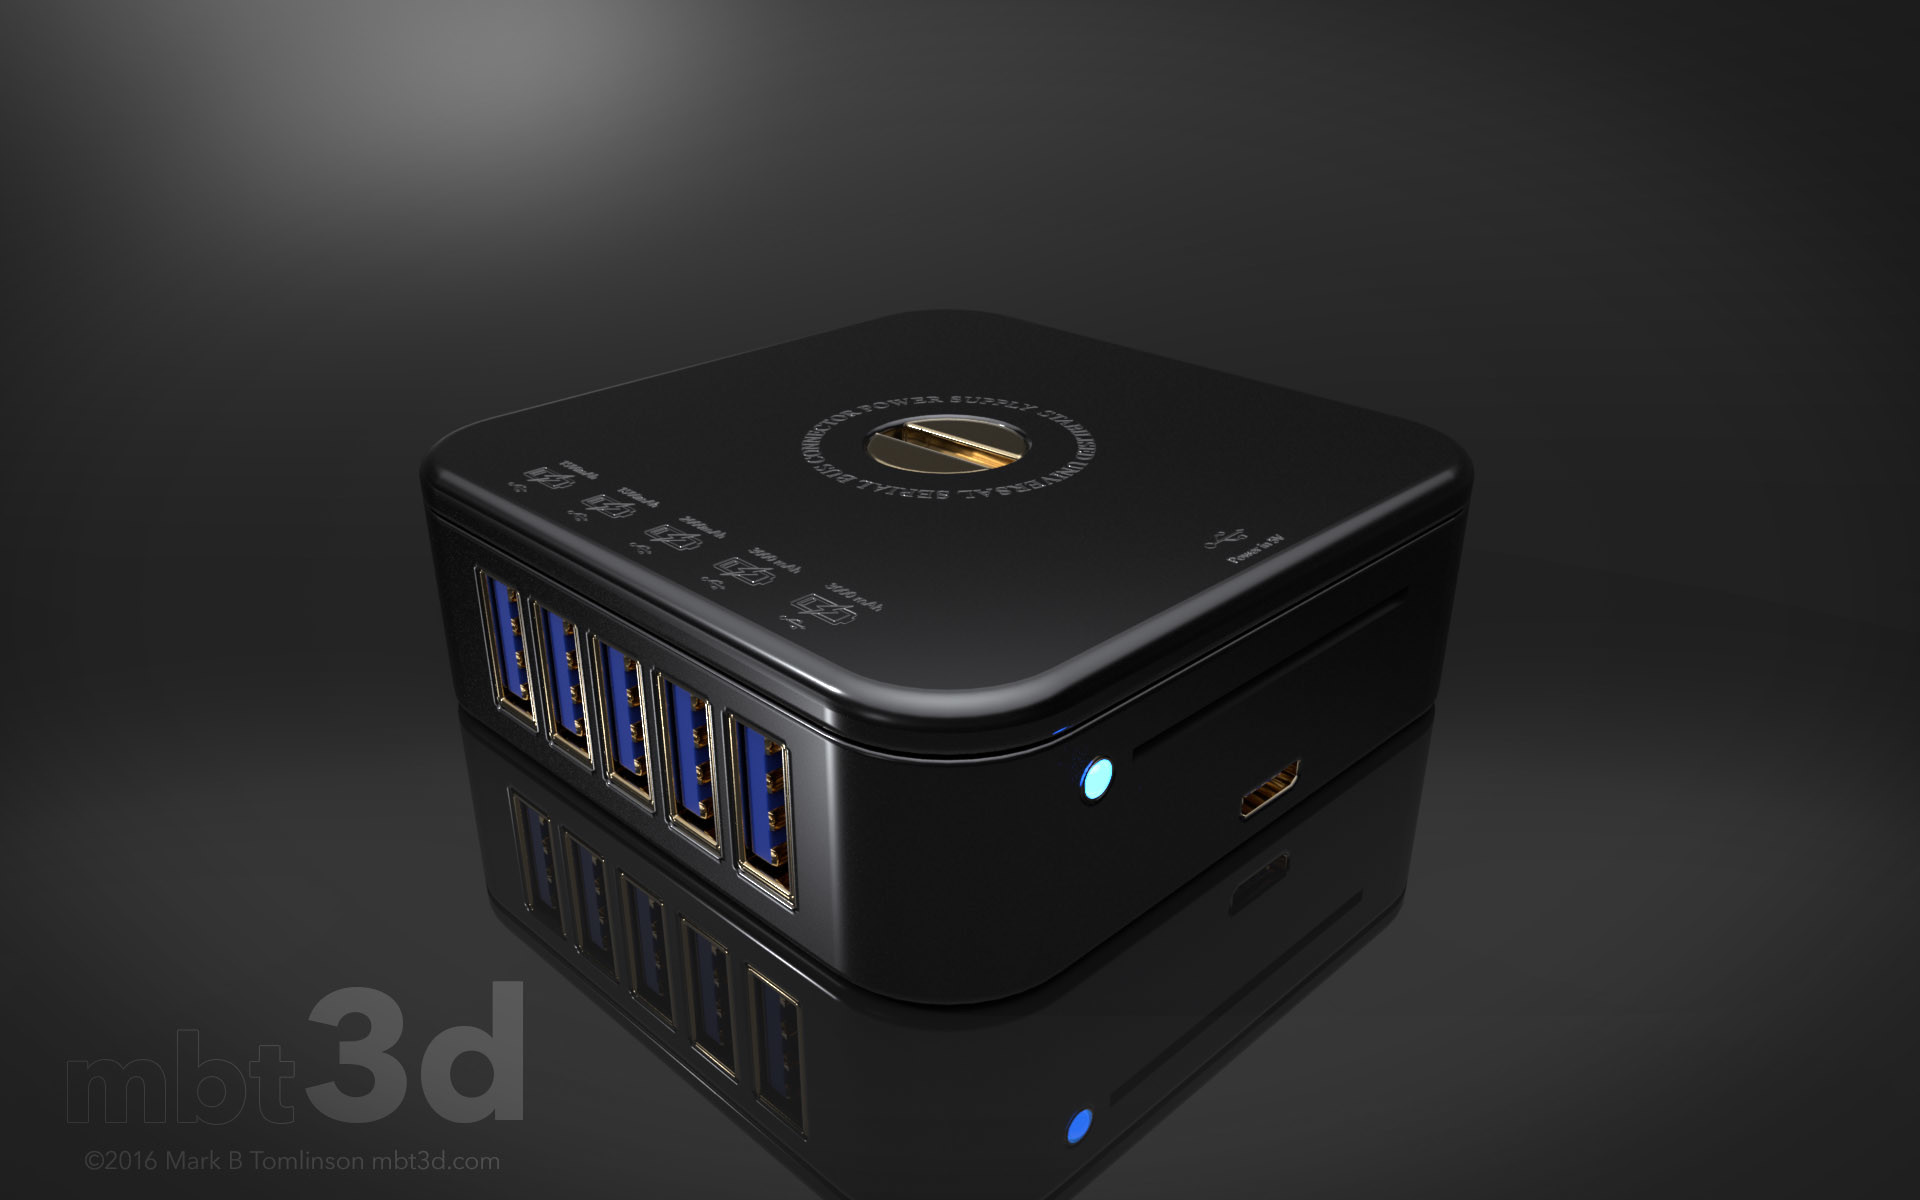 Mark b tomlinson usb power box 3